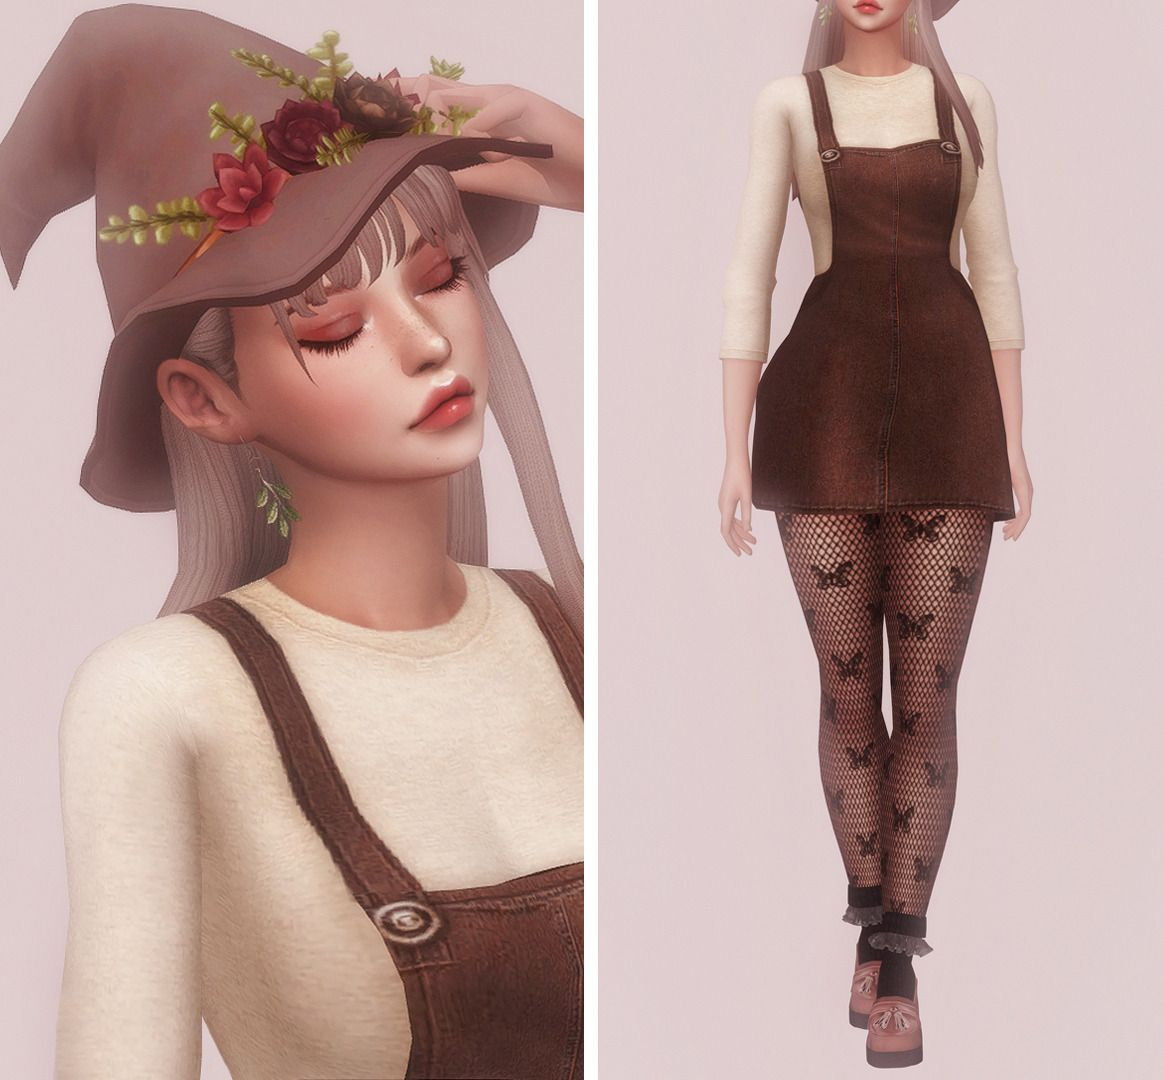 Hair Hat Leaf Earrings Dress Butterfly Fishnets Socks Shoes Trillyke Simlaughlove Sclub Privee Houseofabsurdit With Images Sims 4 Characters Sims Sims Mods